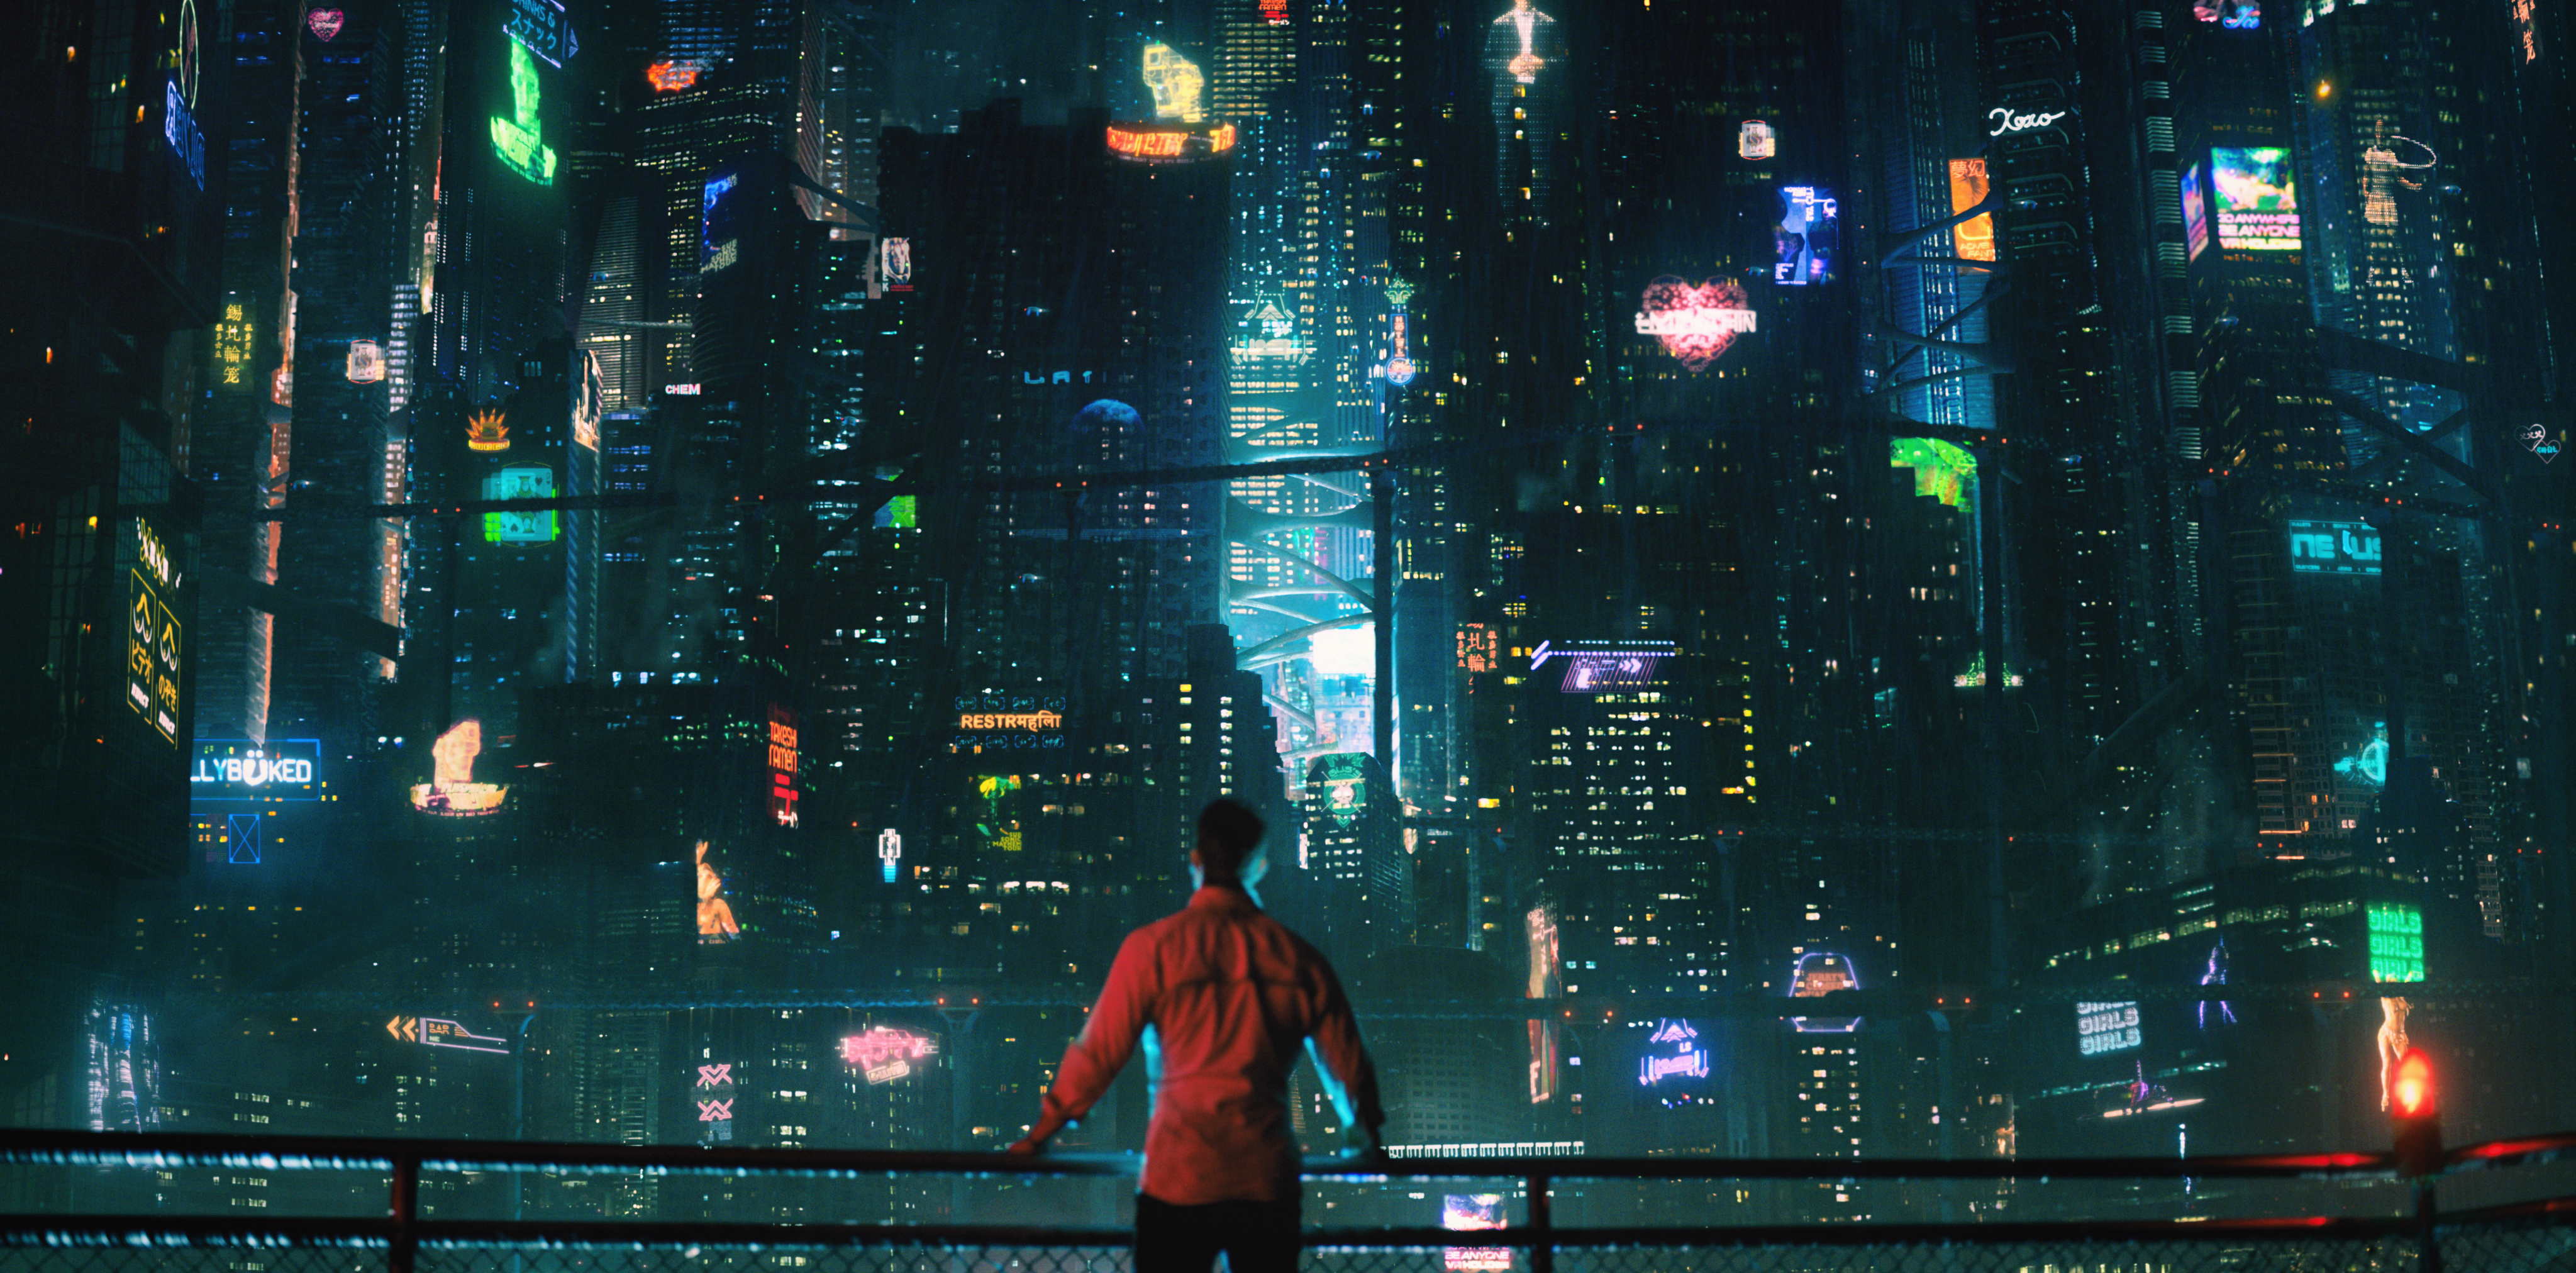 Altered carbon netflix tv series 2018 hd tv shows 4k - Tv series wallpaper 4k ...